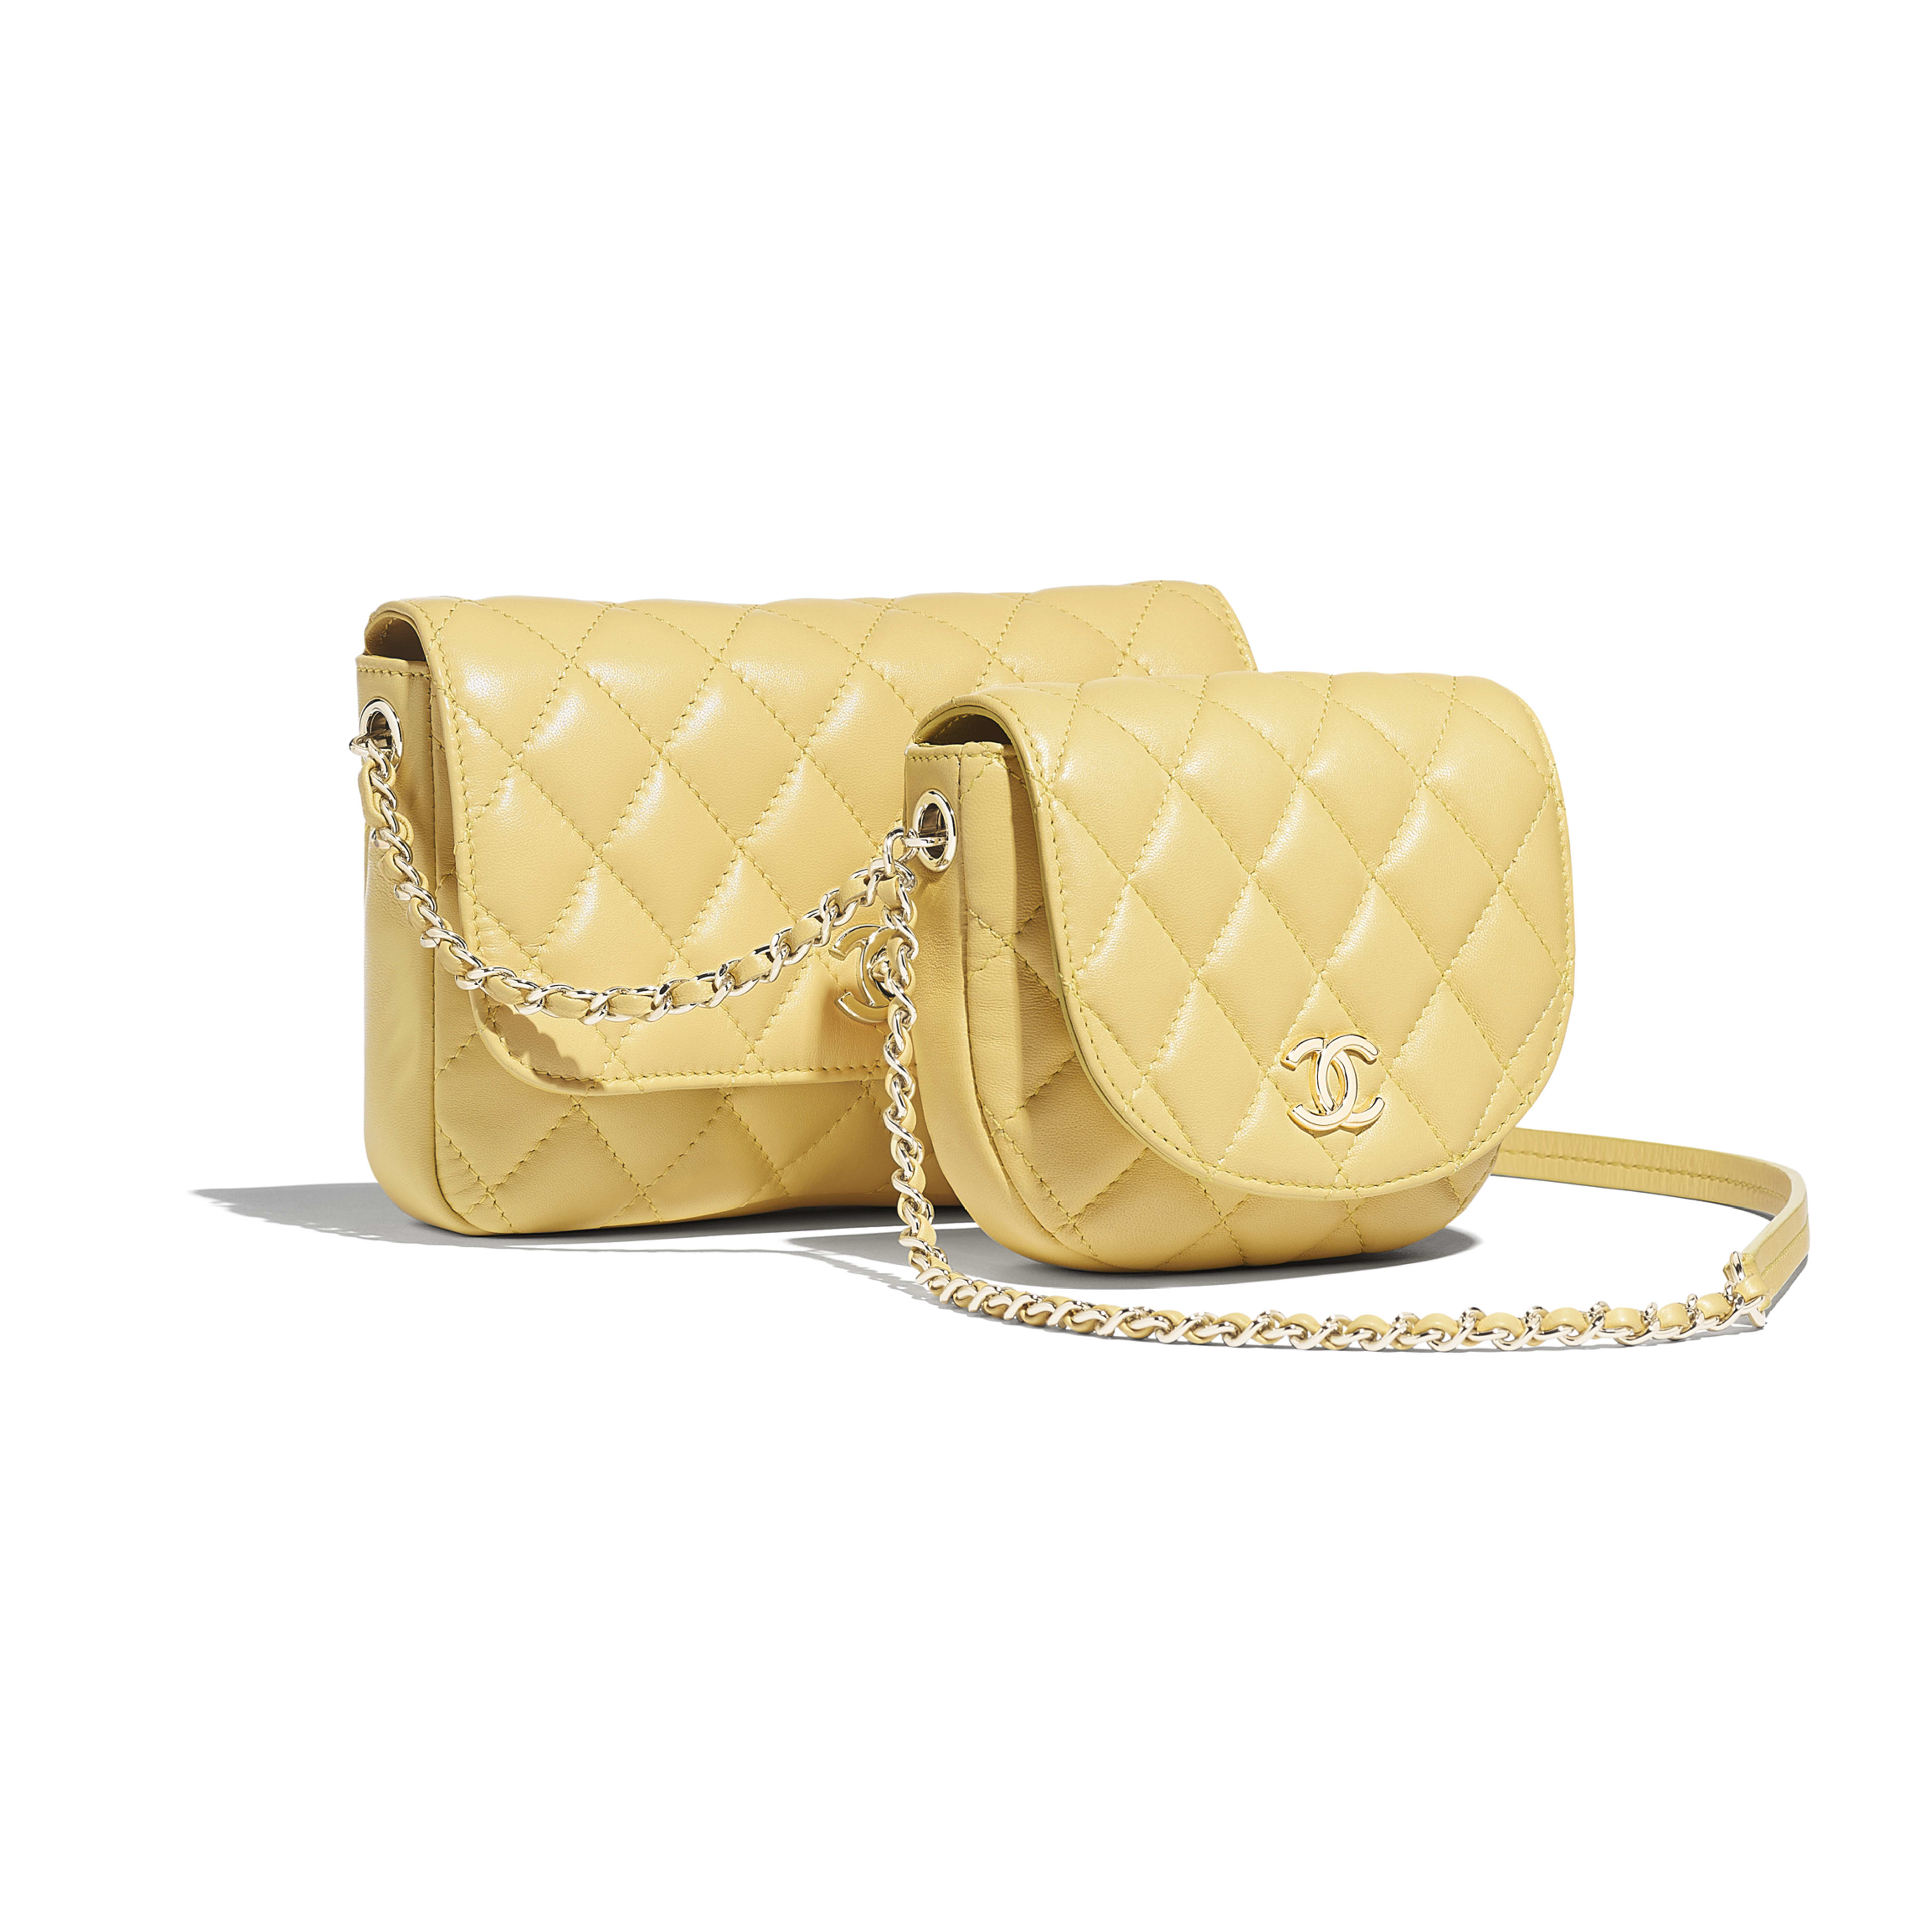 Side-Packs - Yellow - Lambskin & Gold-Tone Metal - Default view - see full sized version